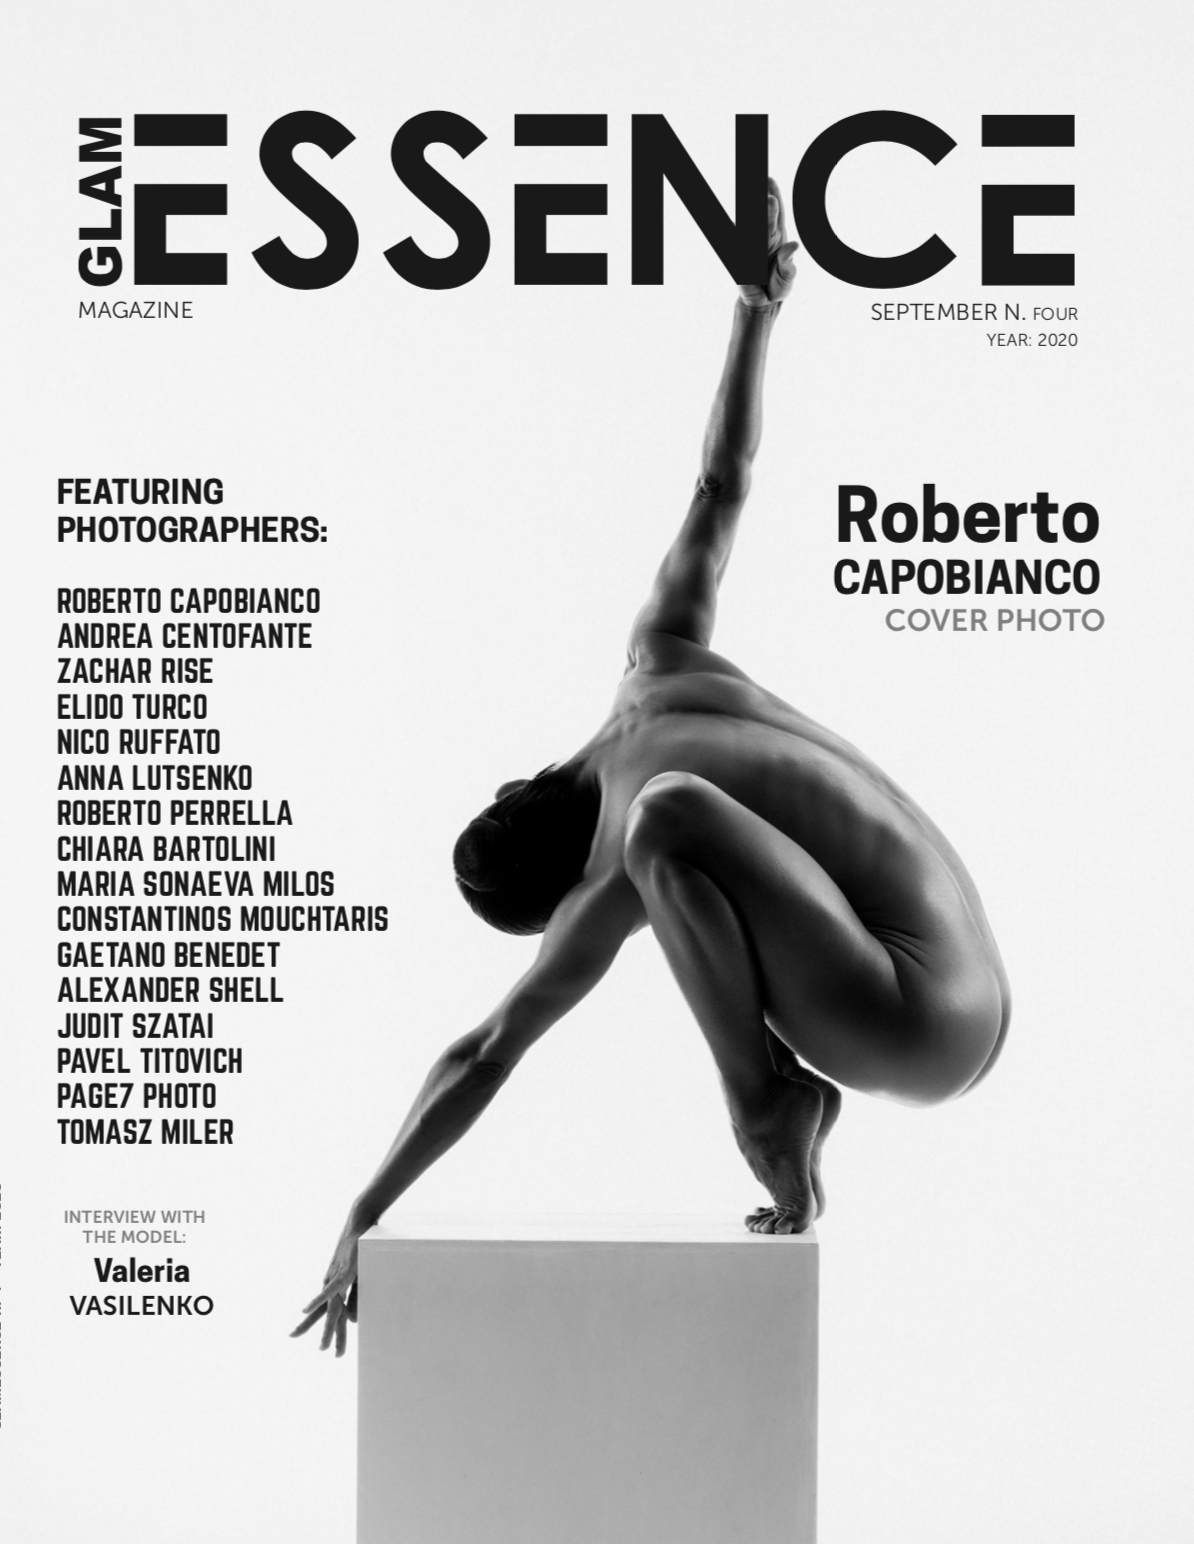 Glam Essence Magazine September 2020 - Cover by Roberto Capobianco